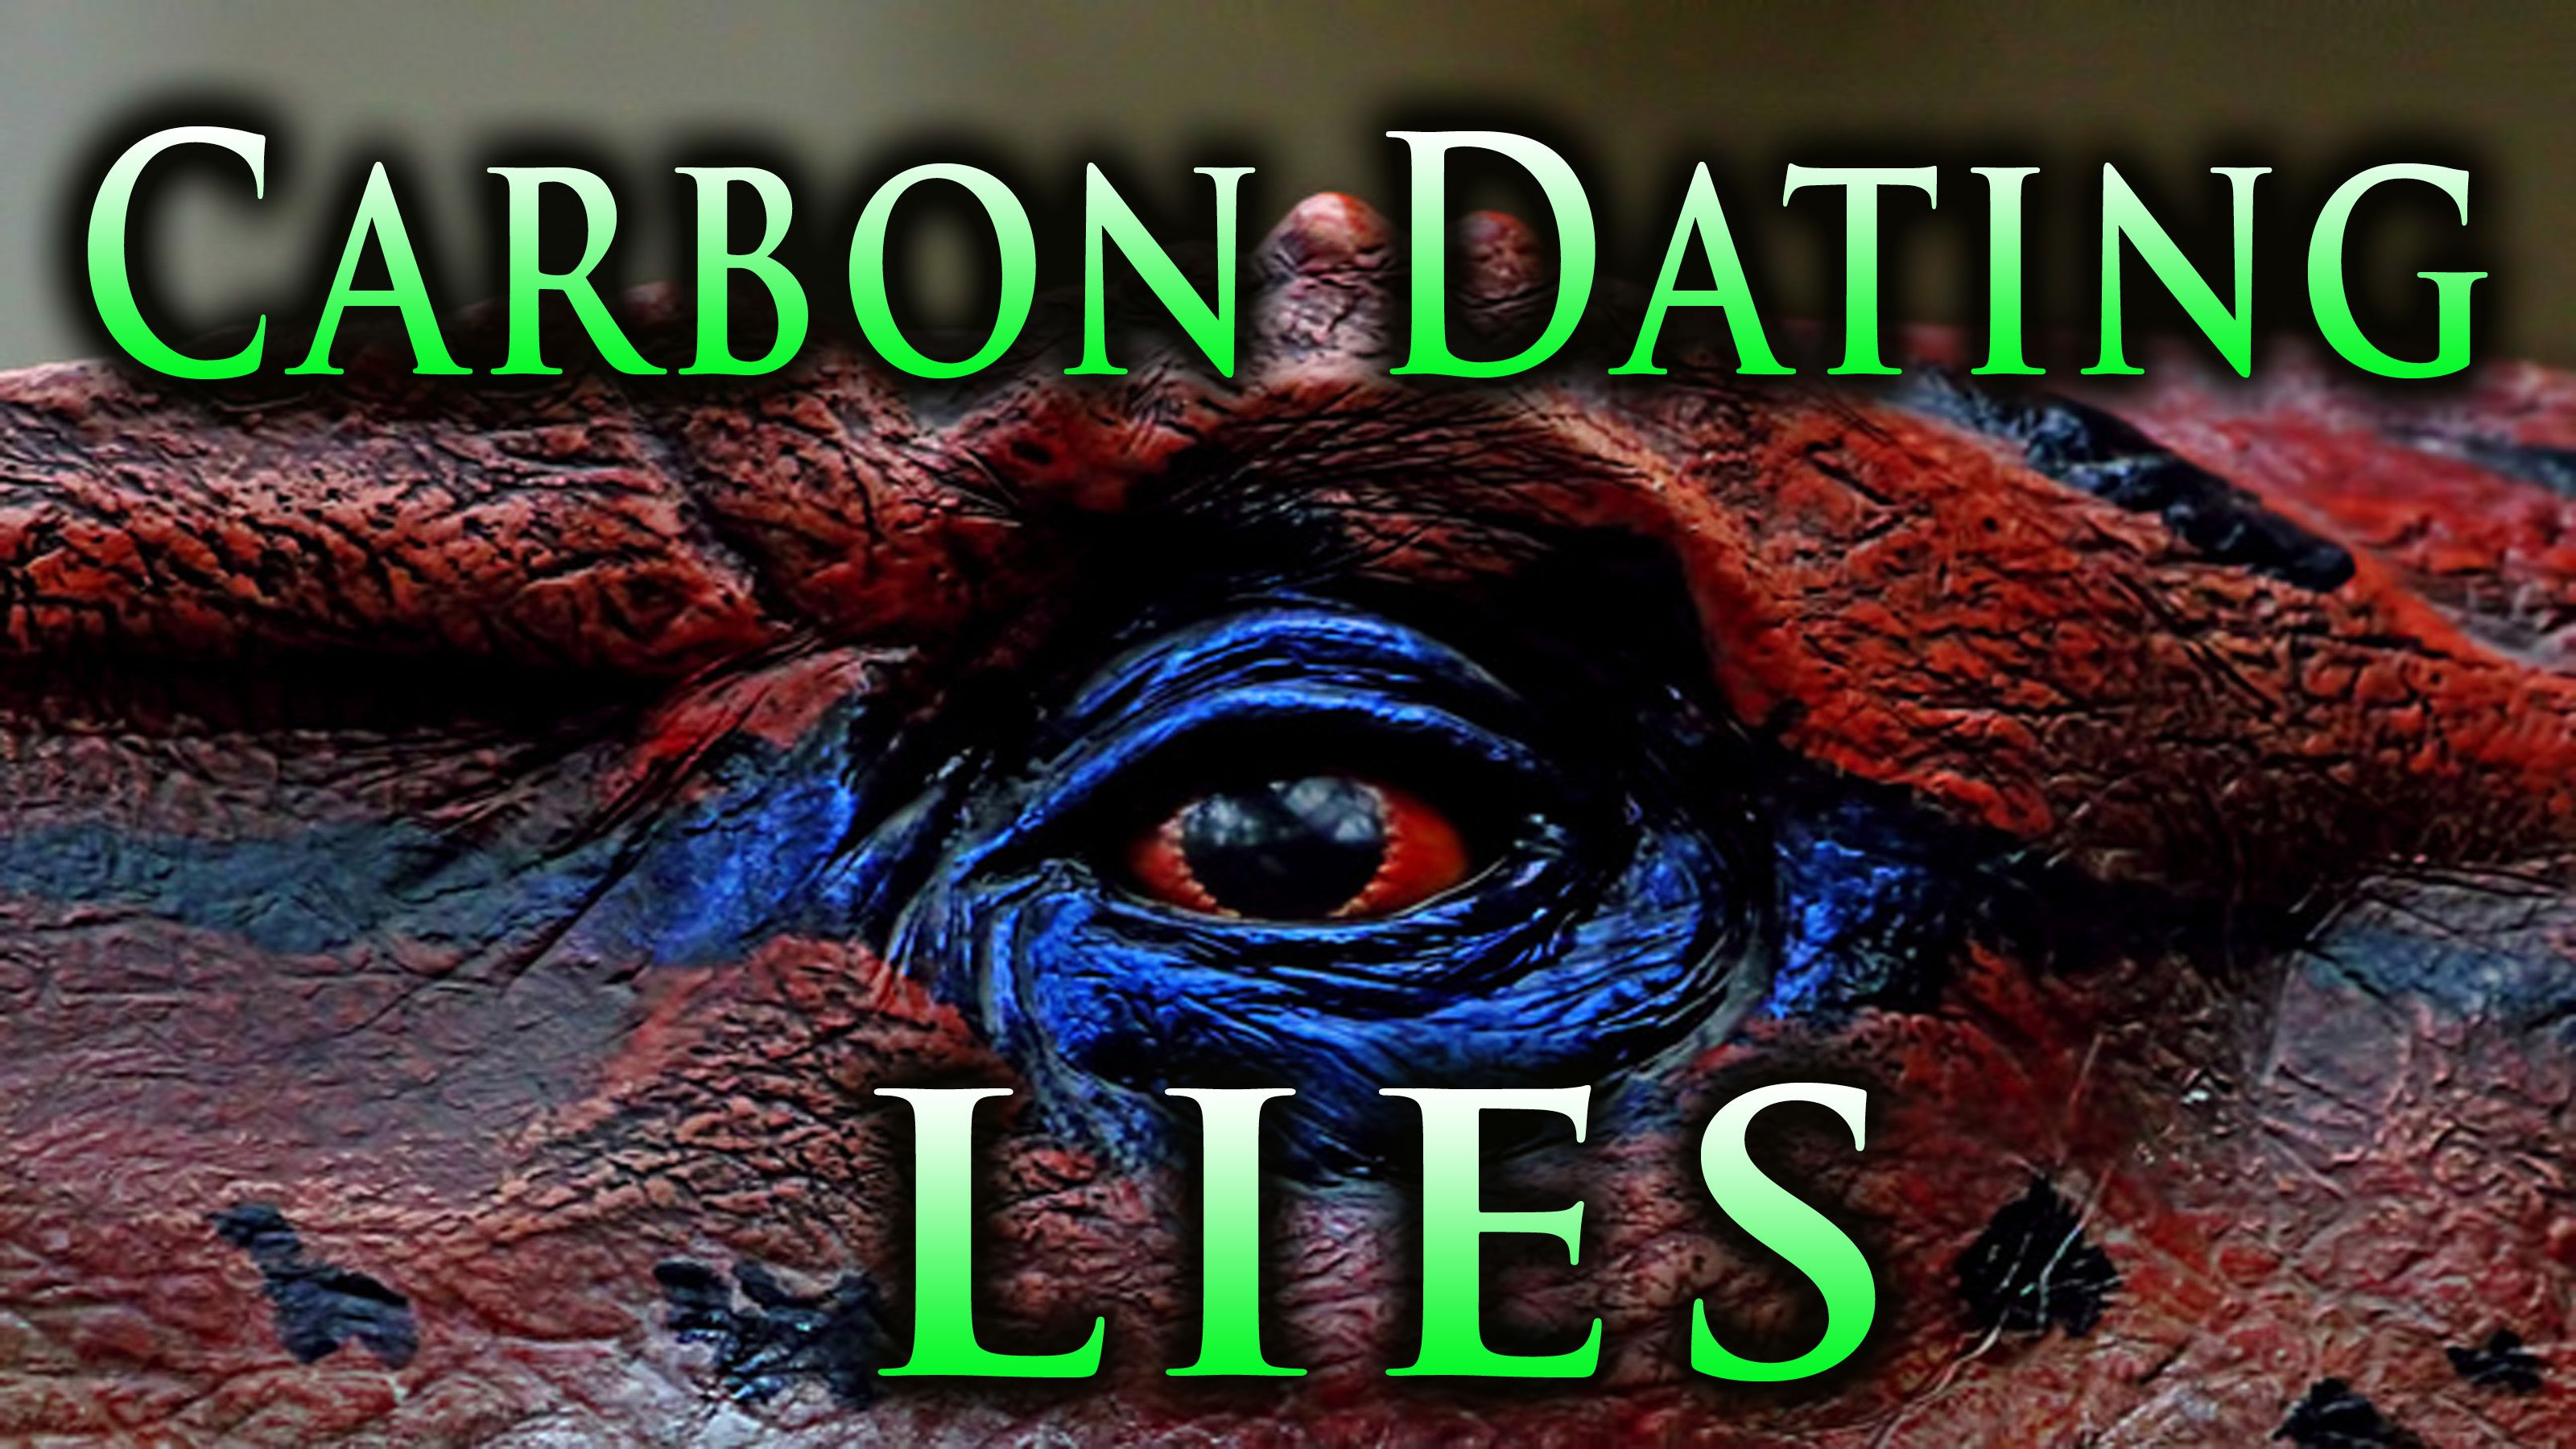 The problem with carbon dating